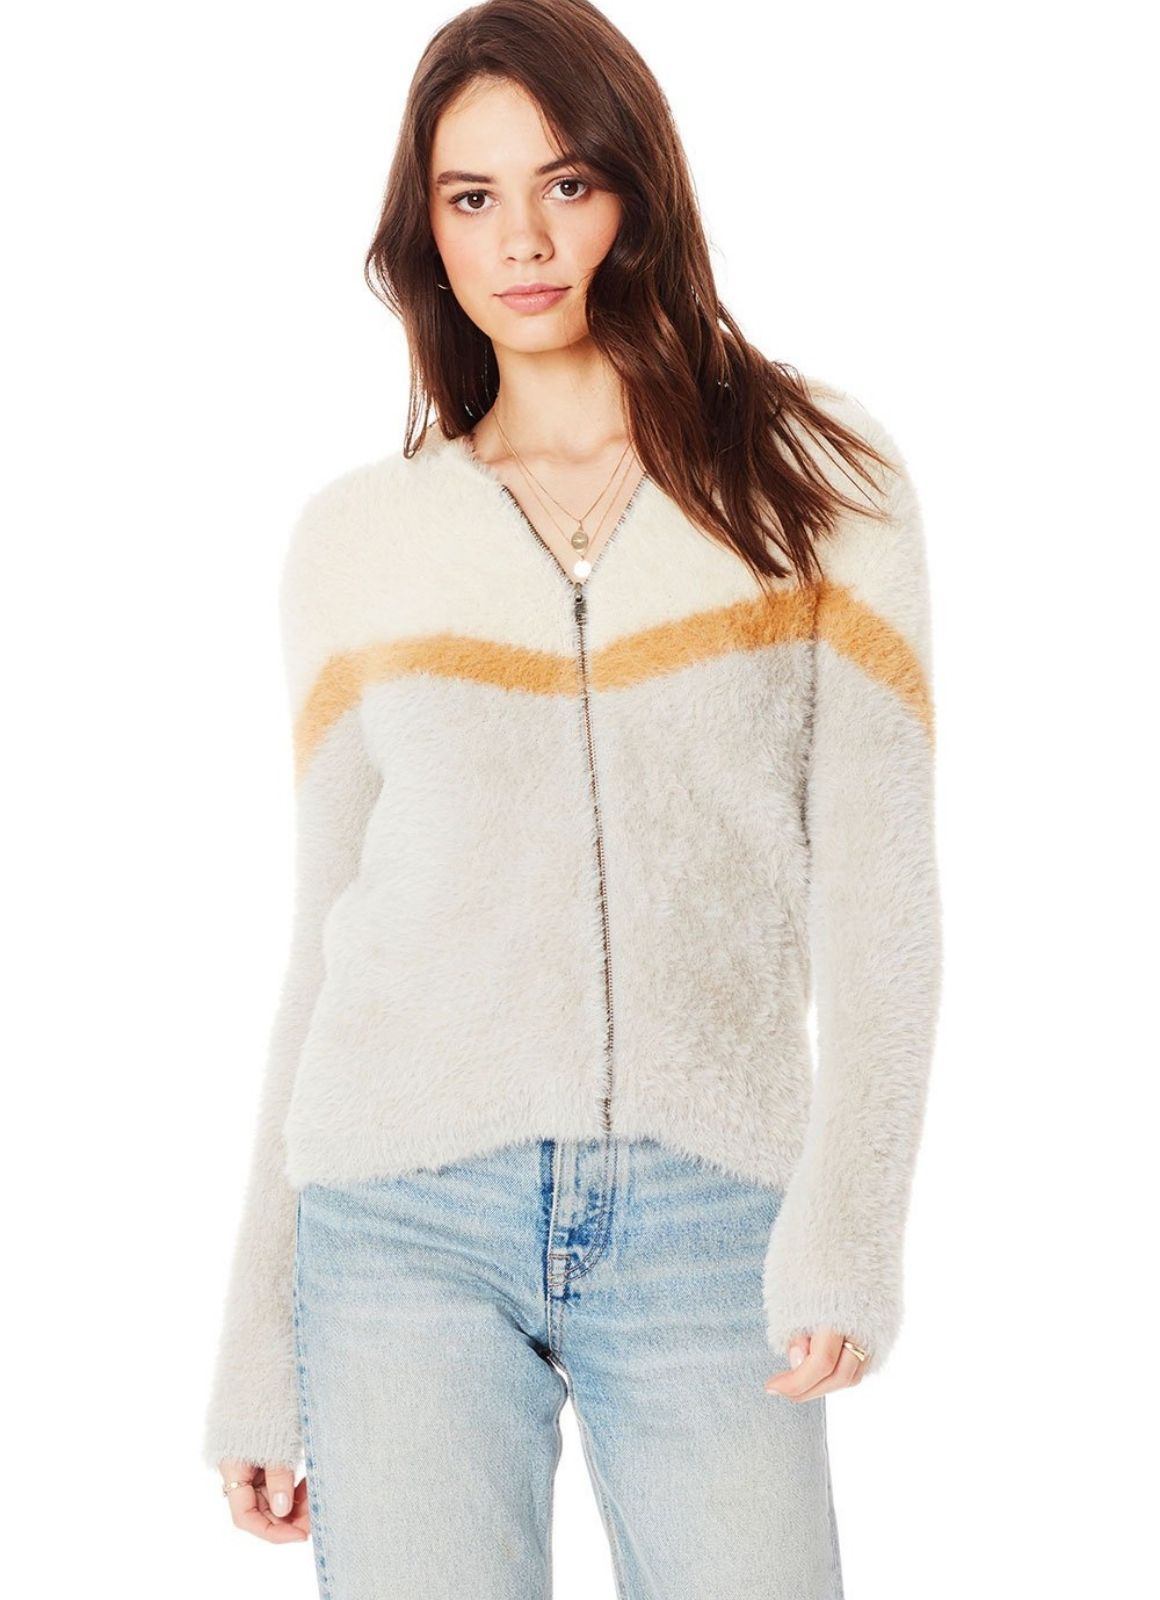 Saltwater Luxe - Devon Sweater